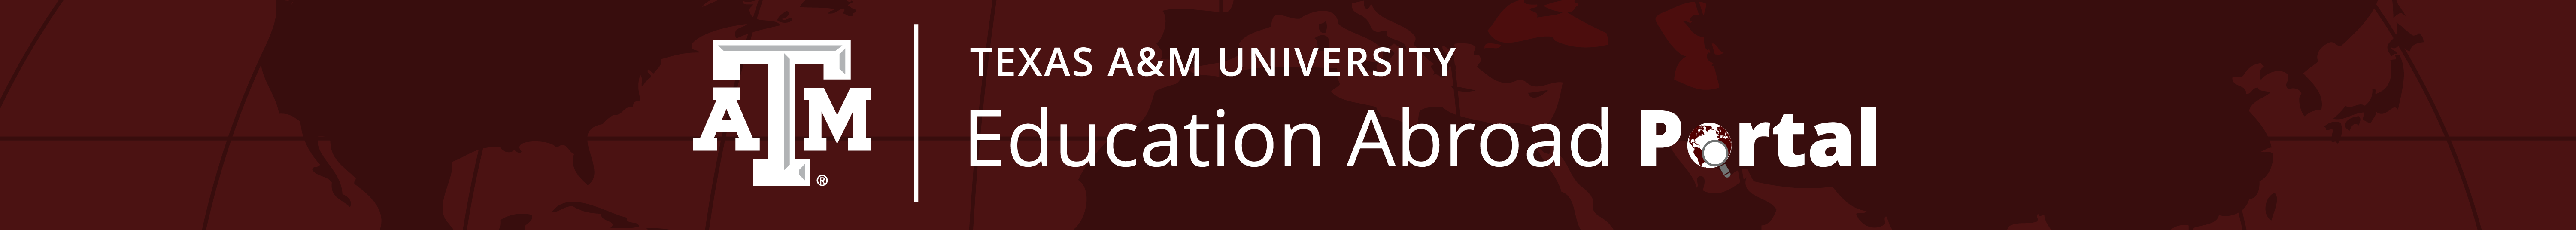 Education Abroad Portal - Texas A&M University